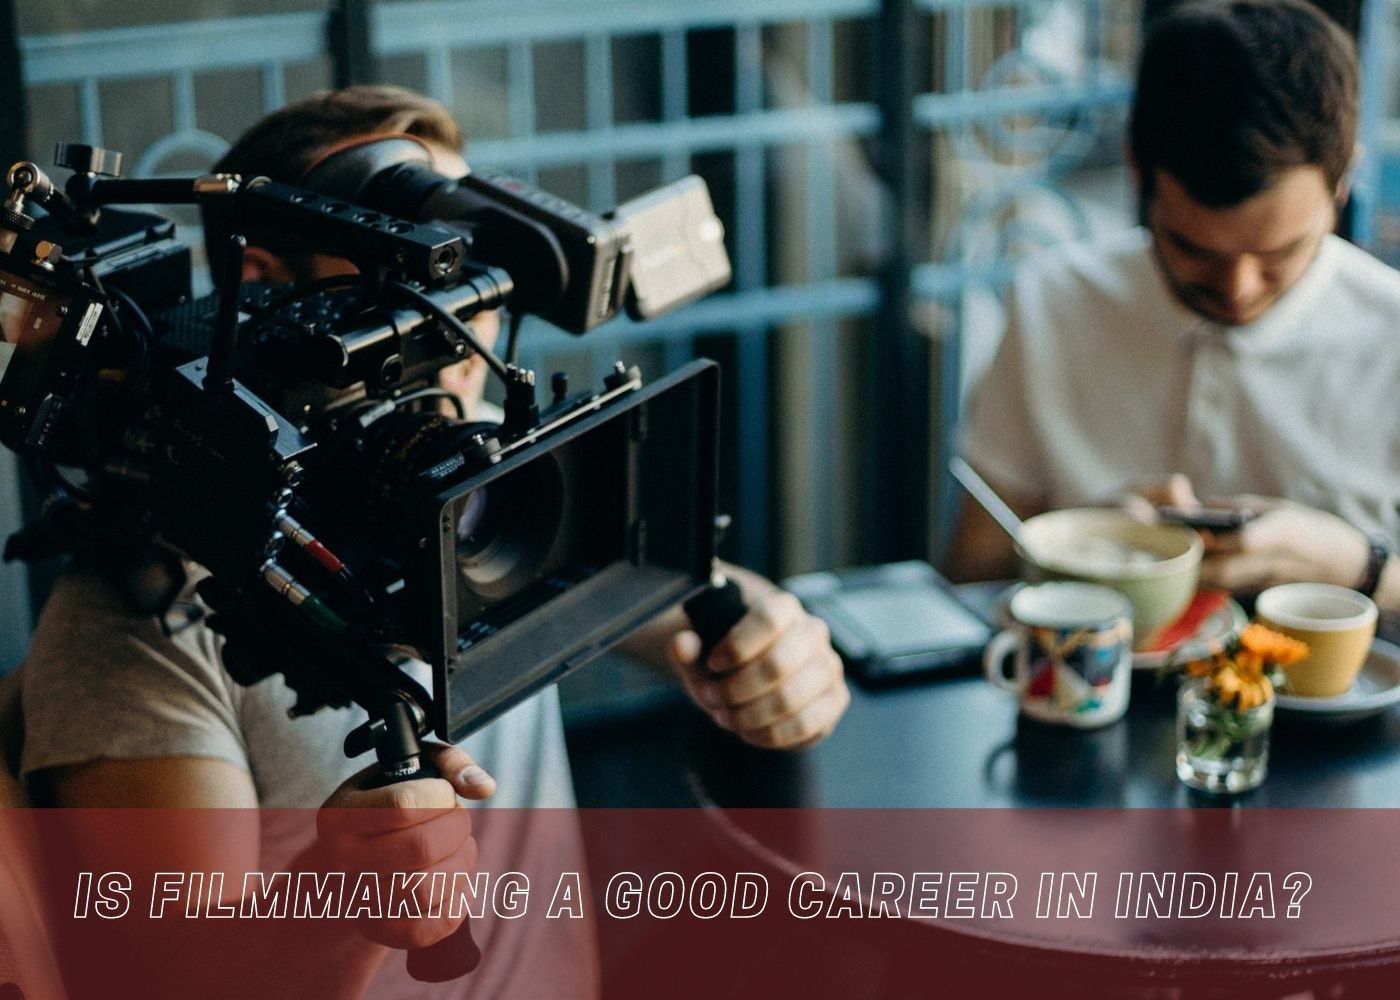 Is Filmmaking a Good Career in India?